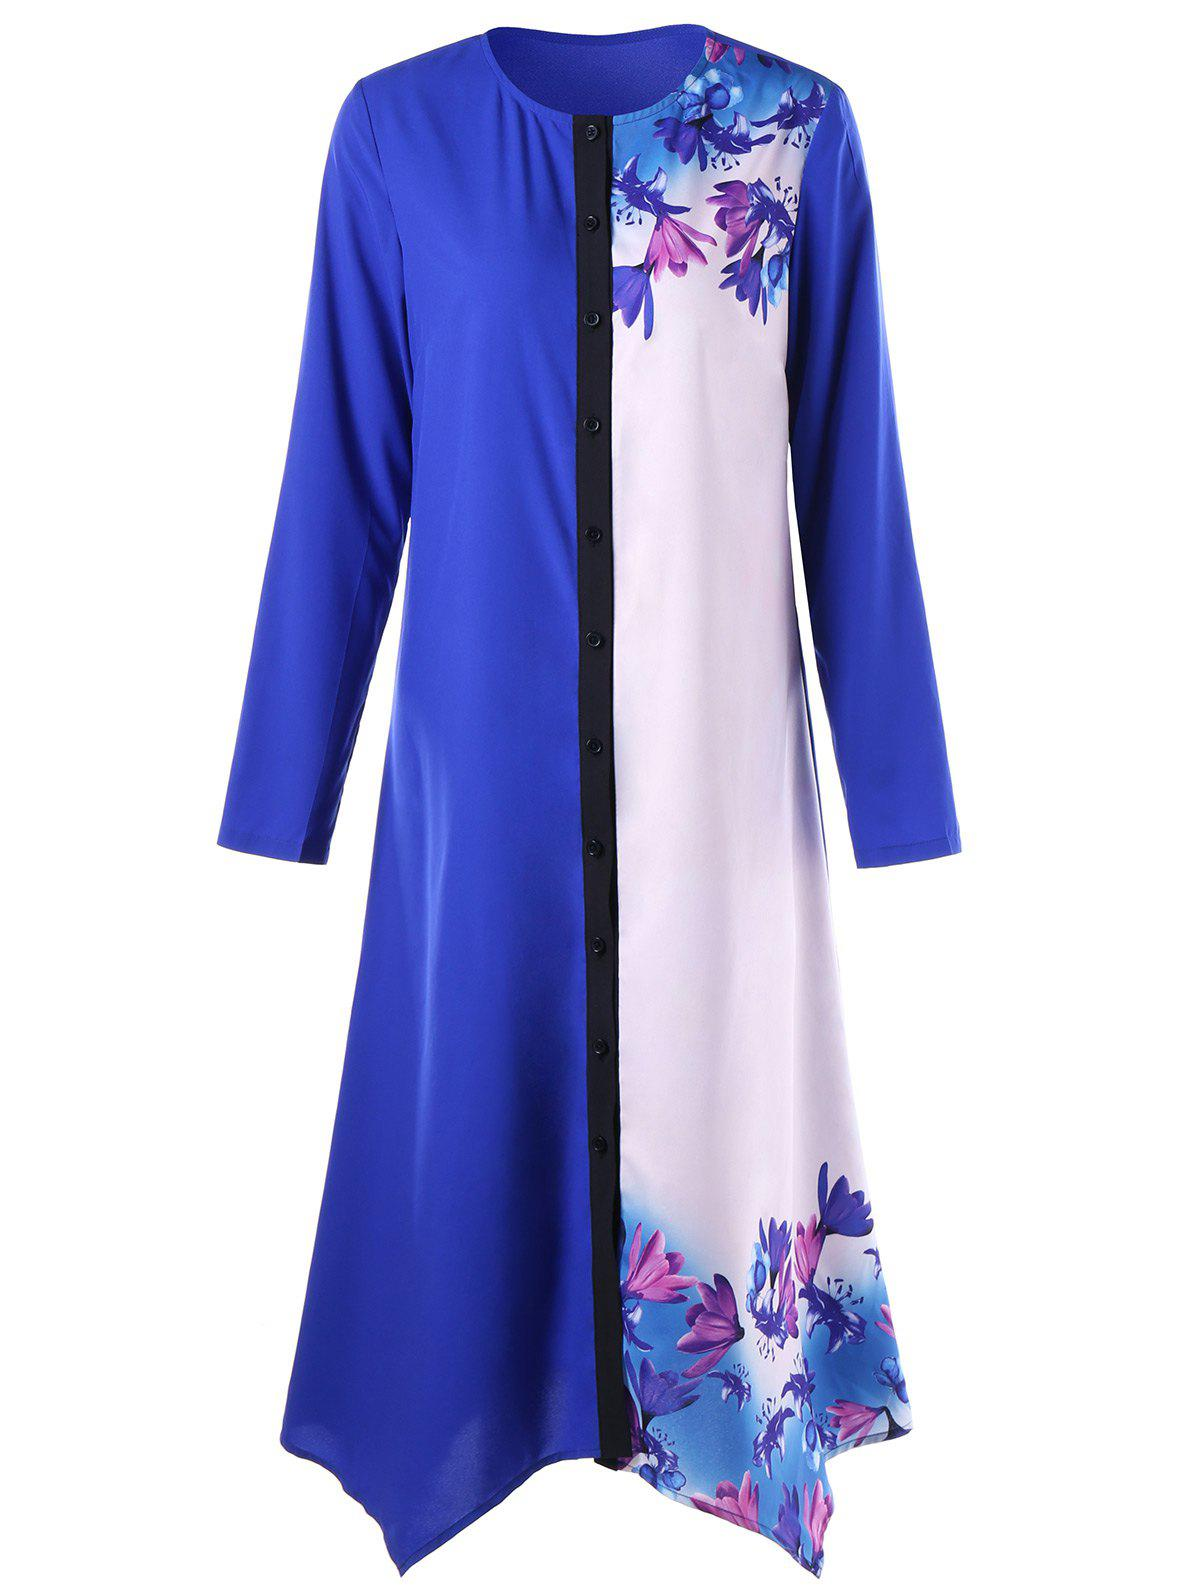 Floral Print Ombre Handkerchief T Shirt Dress - Bleu XL